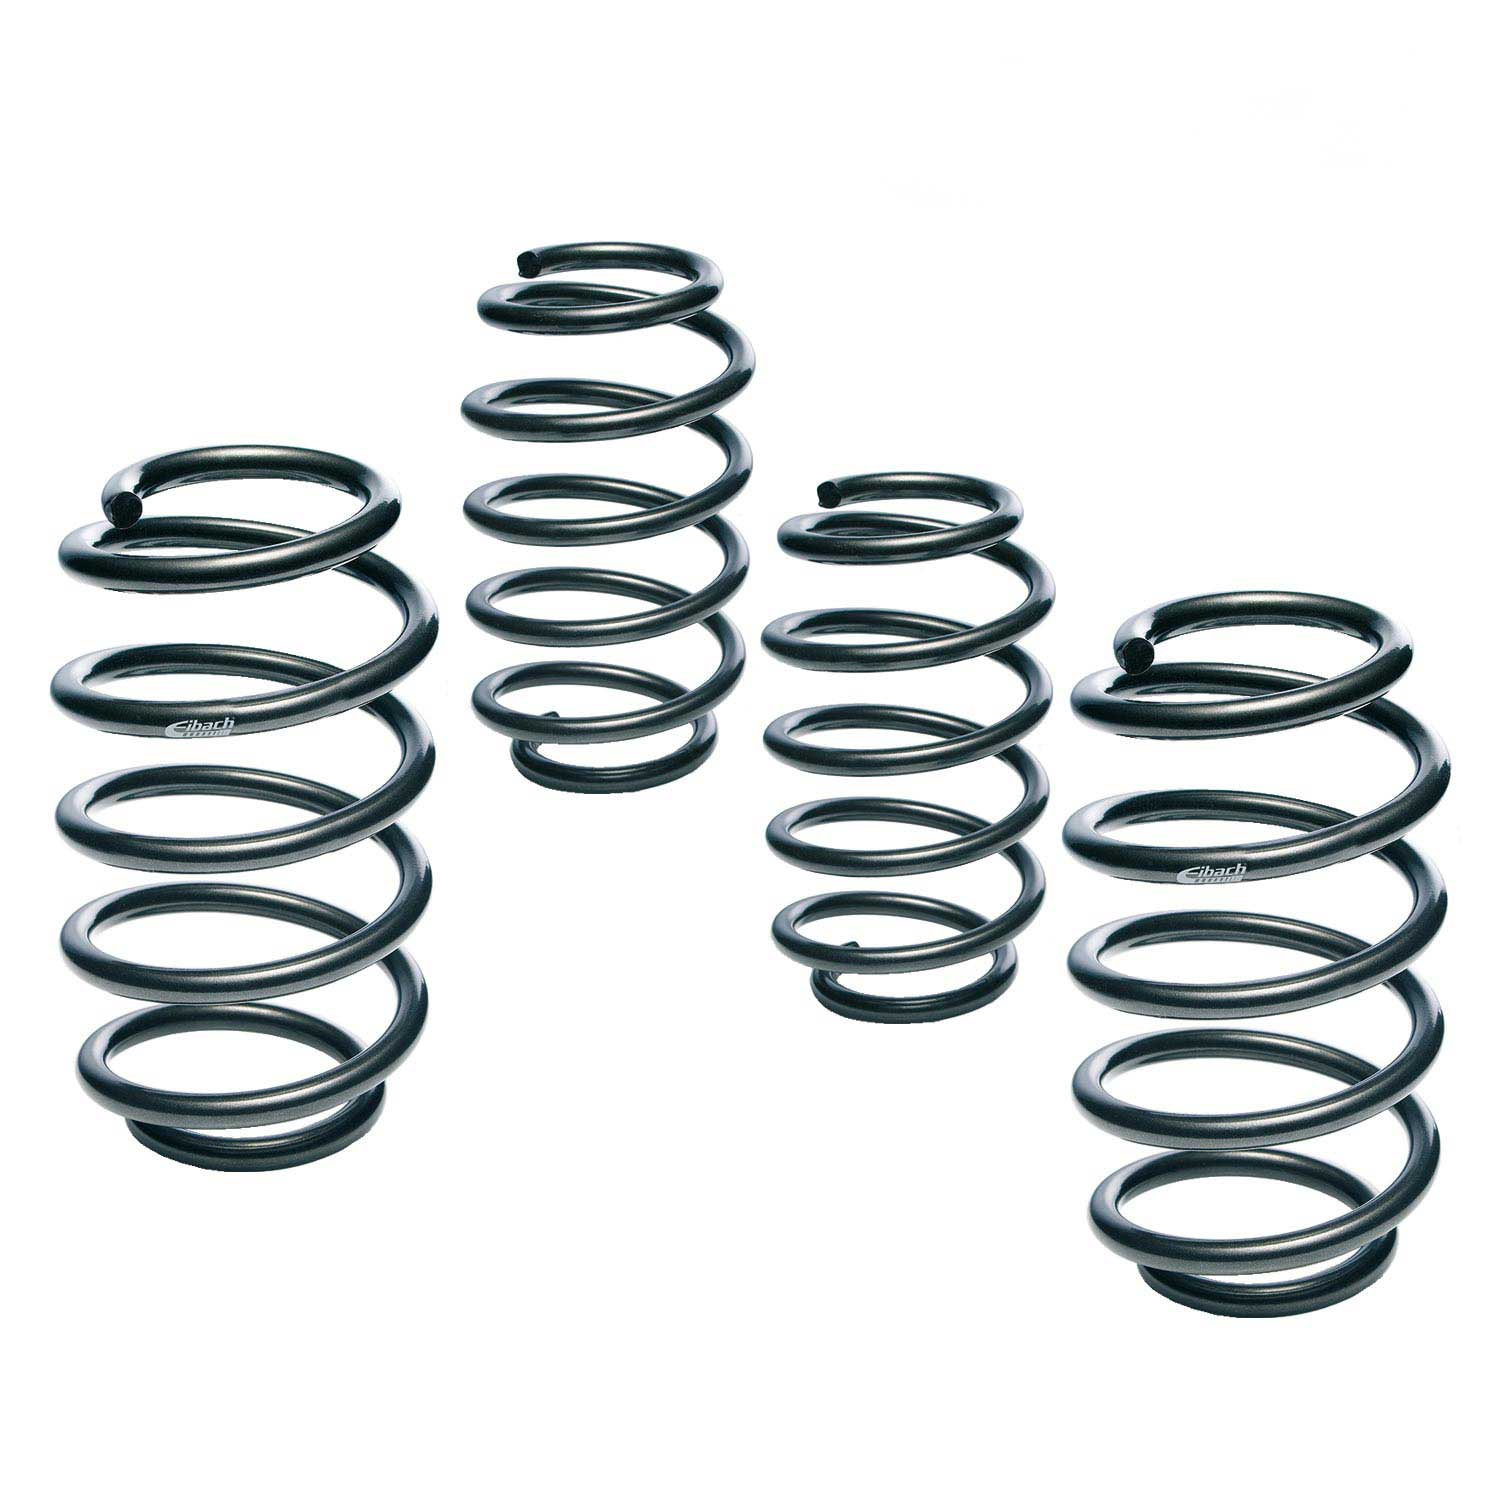 Eibach Pro-Kit Lowering Springs  15/10mm E10-15-021-13-22 for AUDI A3